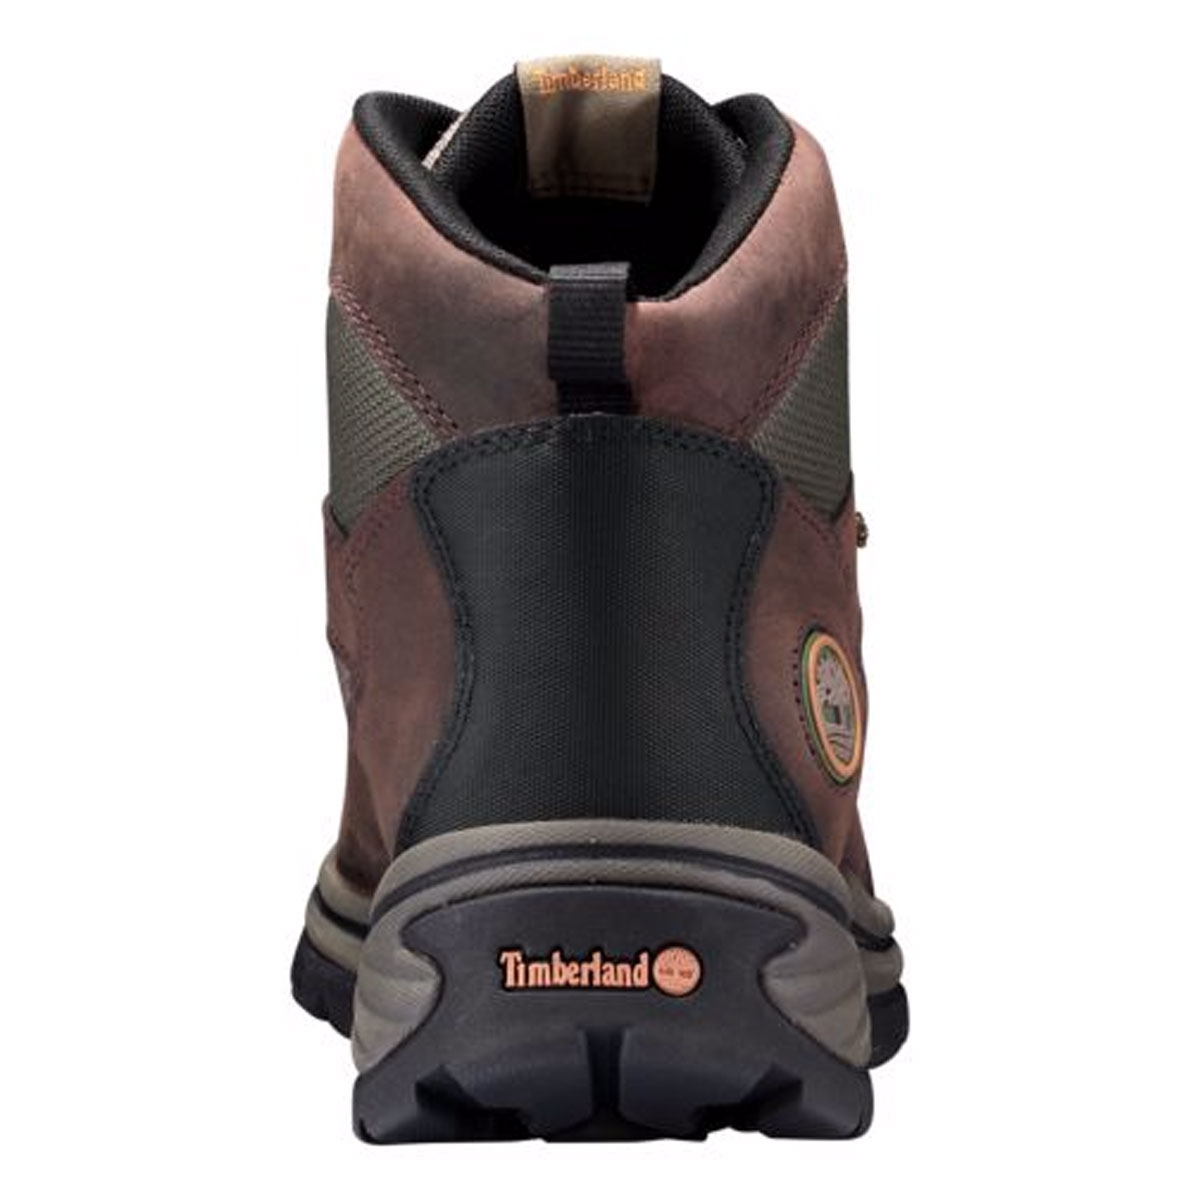 Image of Timberland Chocorua Trail 2 Mid GTX Walking Boots (Men's) Dark Brown